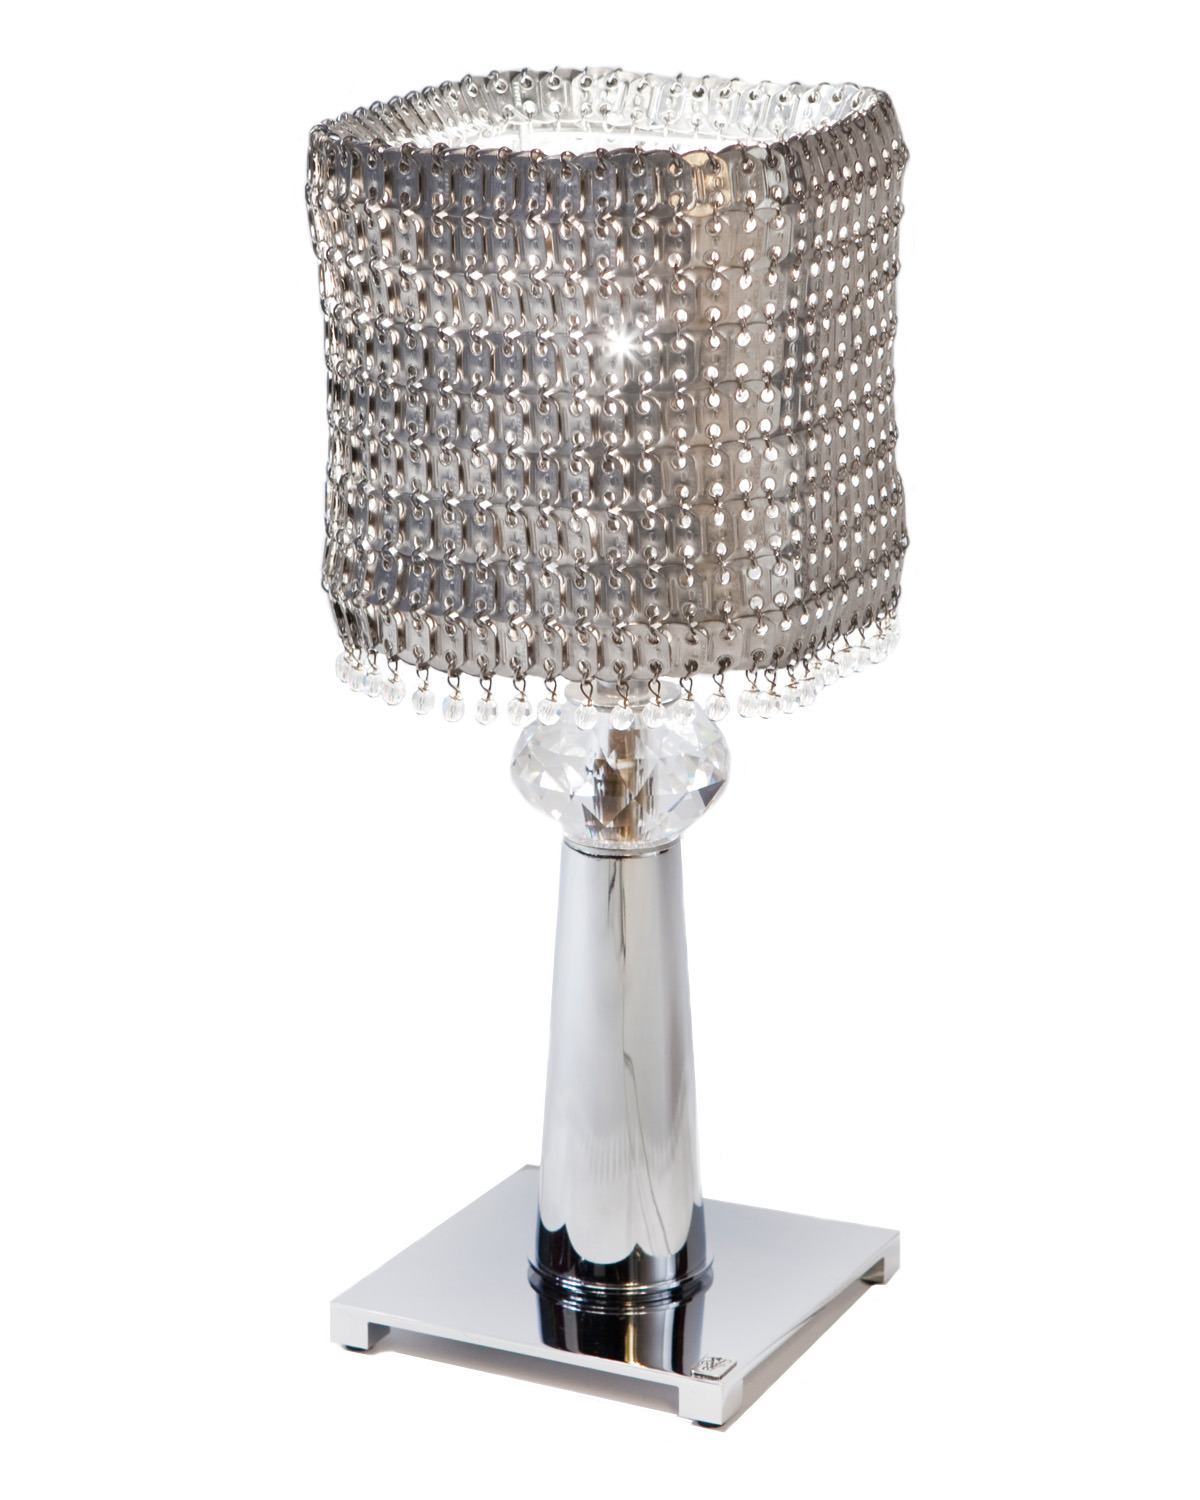 Visionnaire online shop table lamp base in stainless steel and visionnaire online shop table lamp base in stainless steel and sphere in swarovski crystal natural aluminium plates lampshade decorated with swarovski aloadofball Images